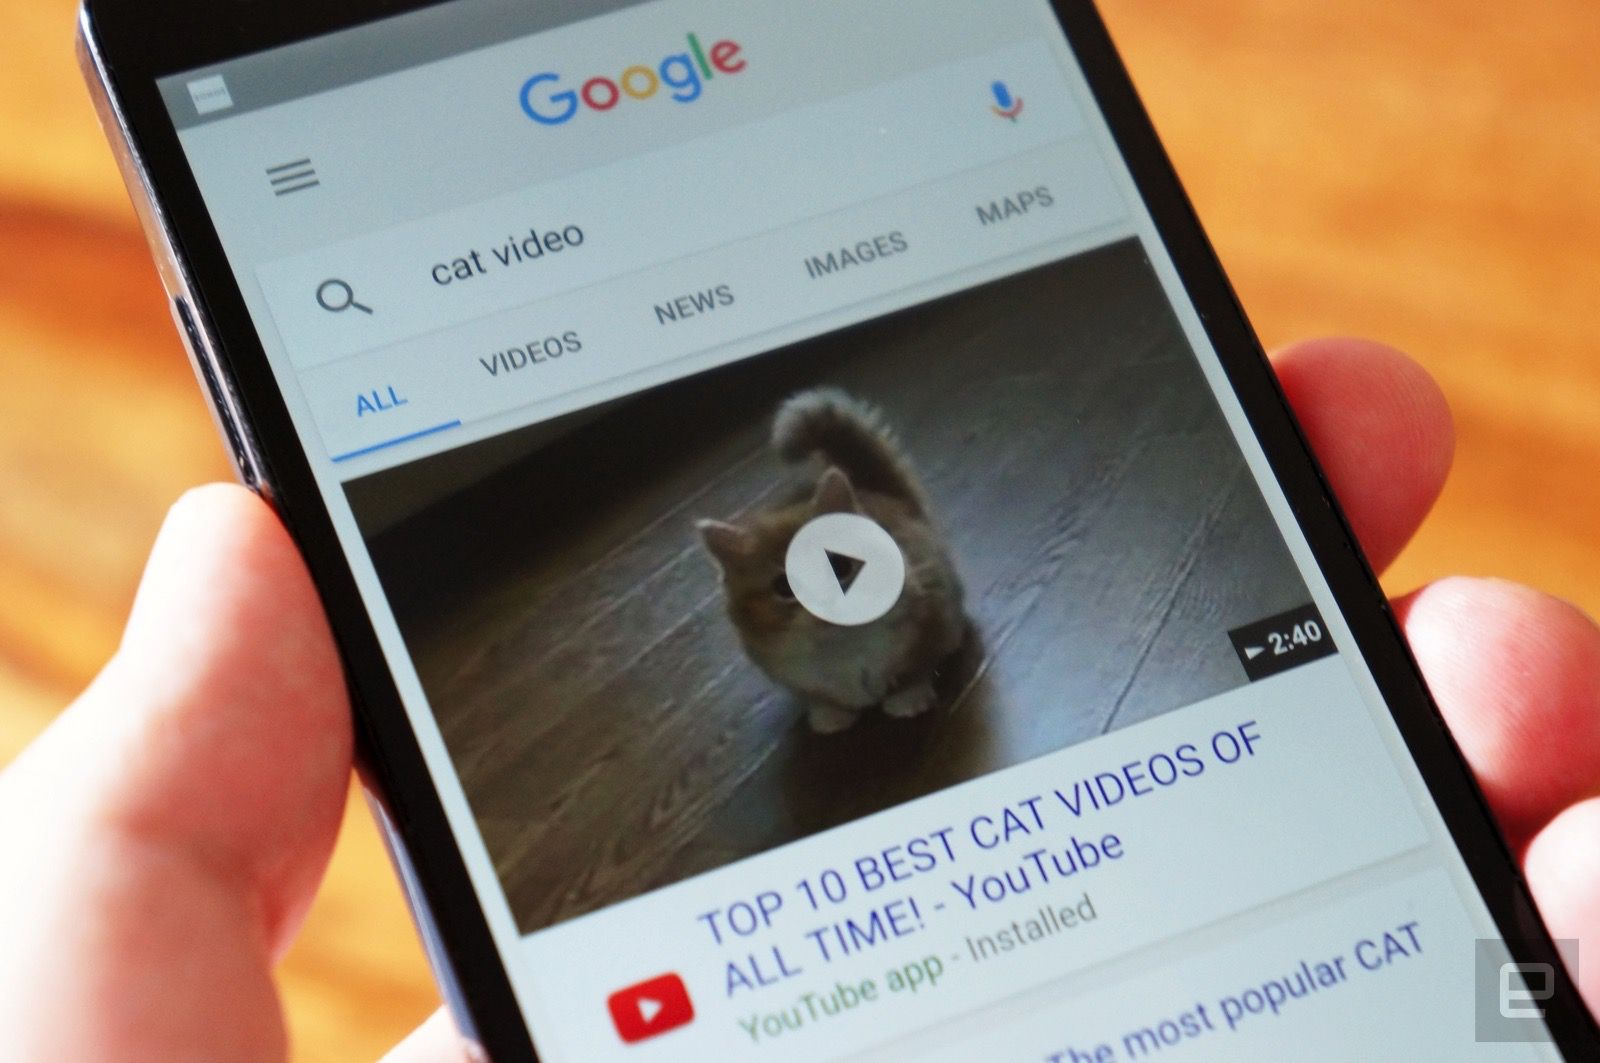 Videos found in Google search results.